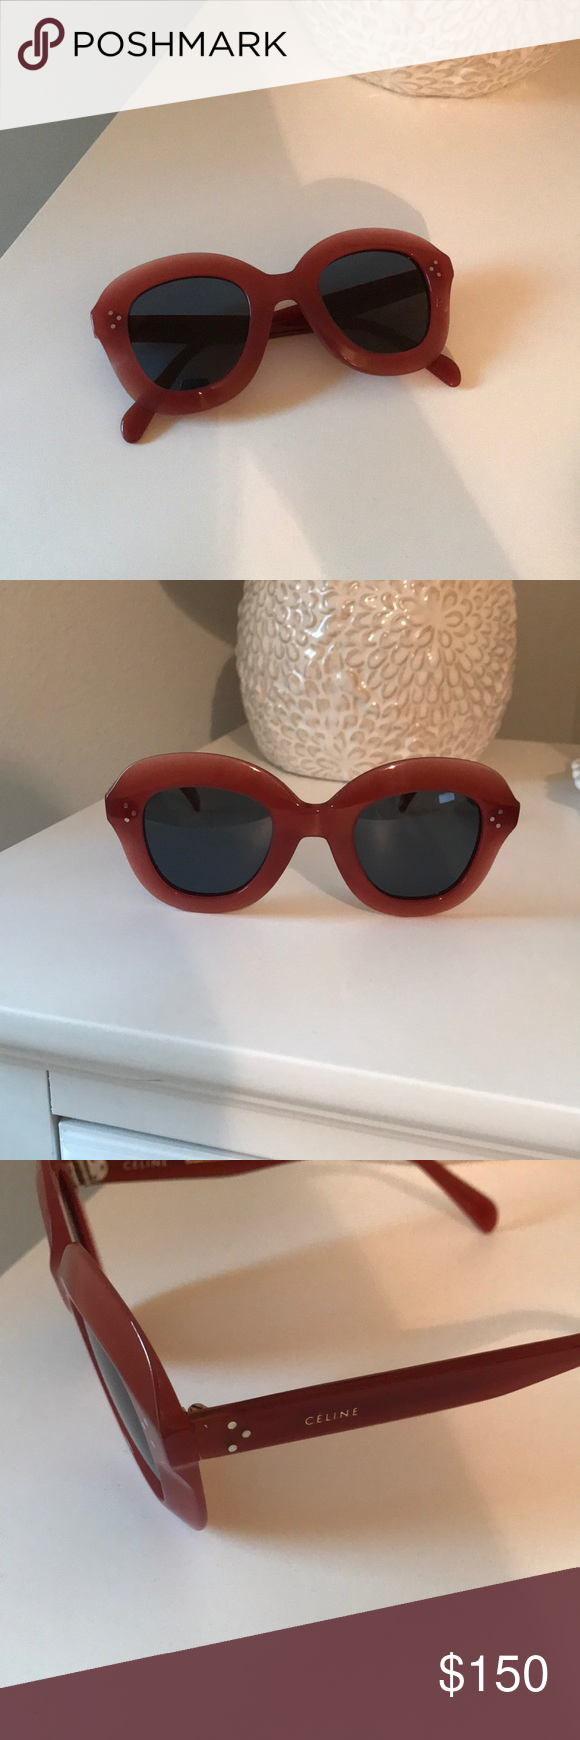 dc9d1fa94c565 Celine Lola round sunglasses - pink acetate Celine Lola round sunglasses in  pink acetate (CL 41445 S) - comes with case - only wore once! Celine  Accessories ...